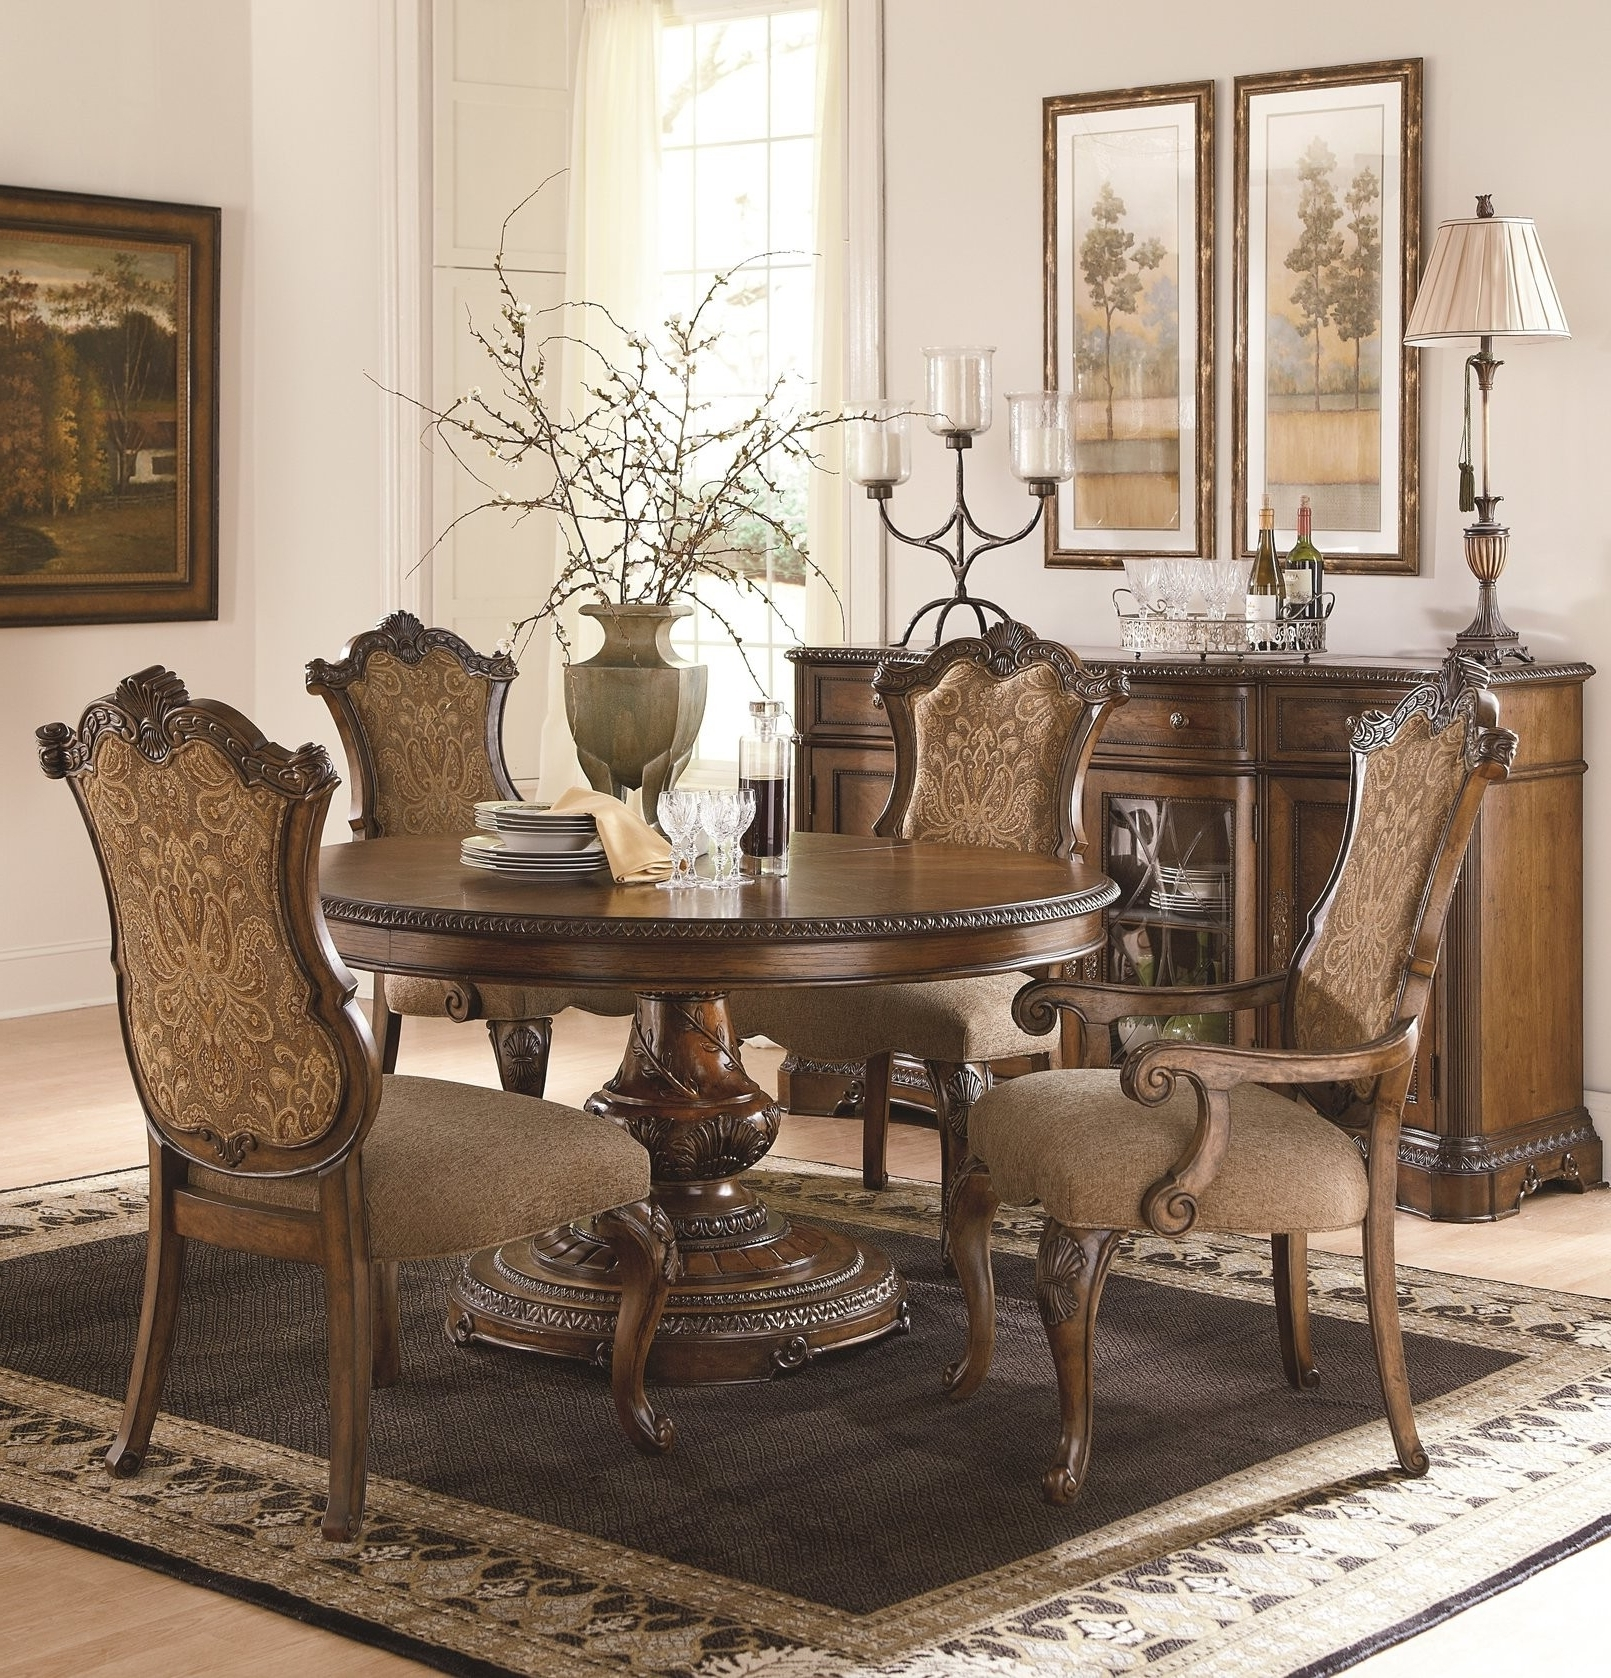 Dining Table Upholstered Chairs Unique The Pemberleigh Round Table Inside Favorite Jaxon 7 Piece Rectangle Dining Sets With Upholstered Chairs (Gallery 10 of 25)